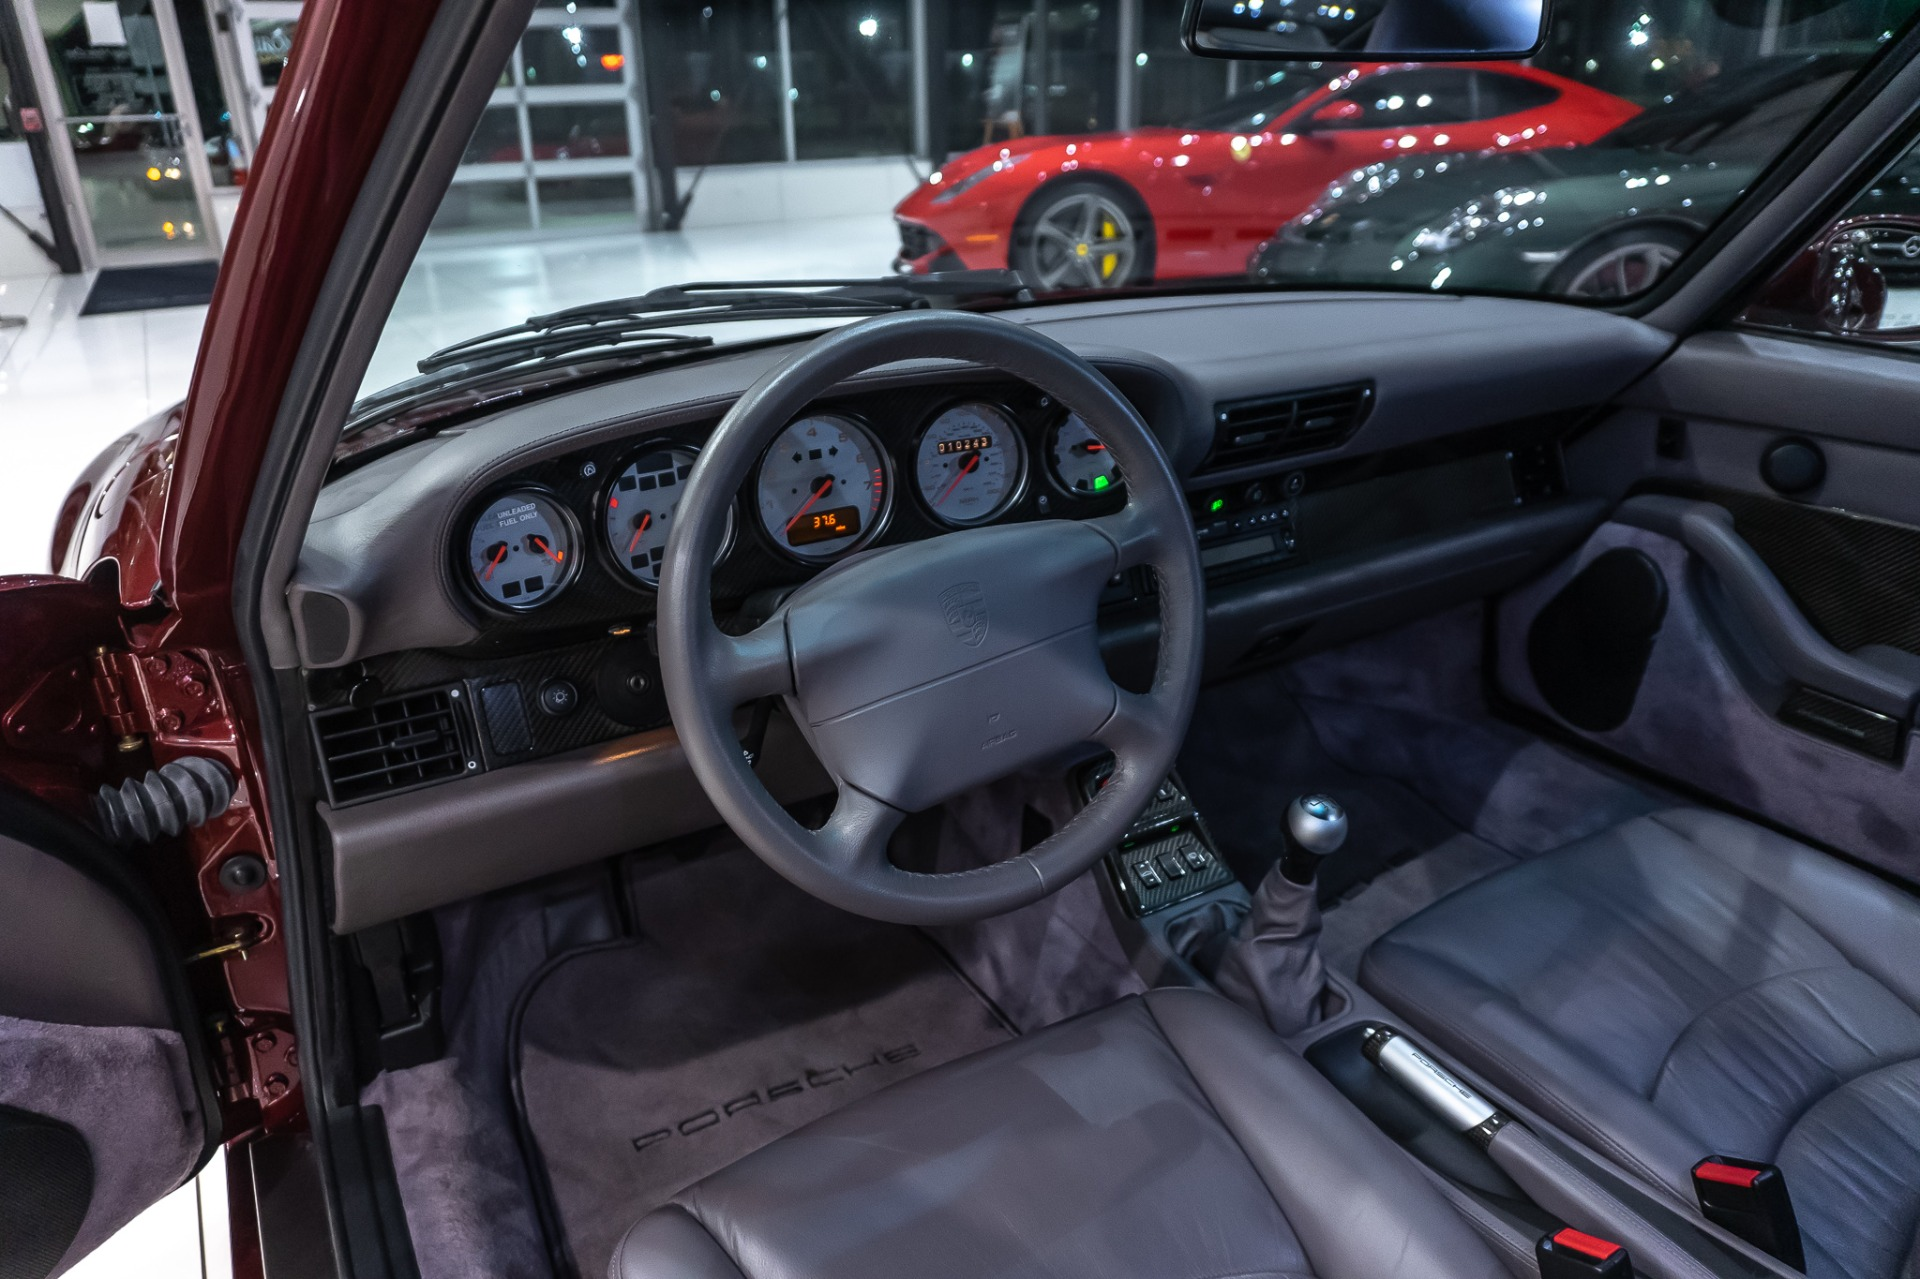 Used-1997-Porsche-993-38L-Twin-Plug-Turbo-Coupe-Fully-Documented-ANDIAL-Build-Perfect